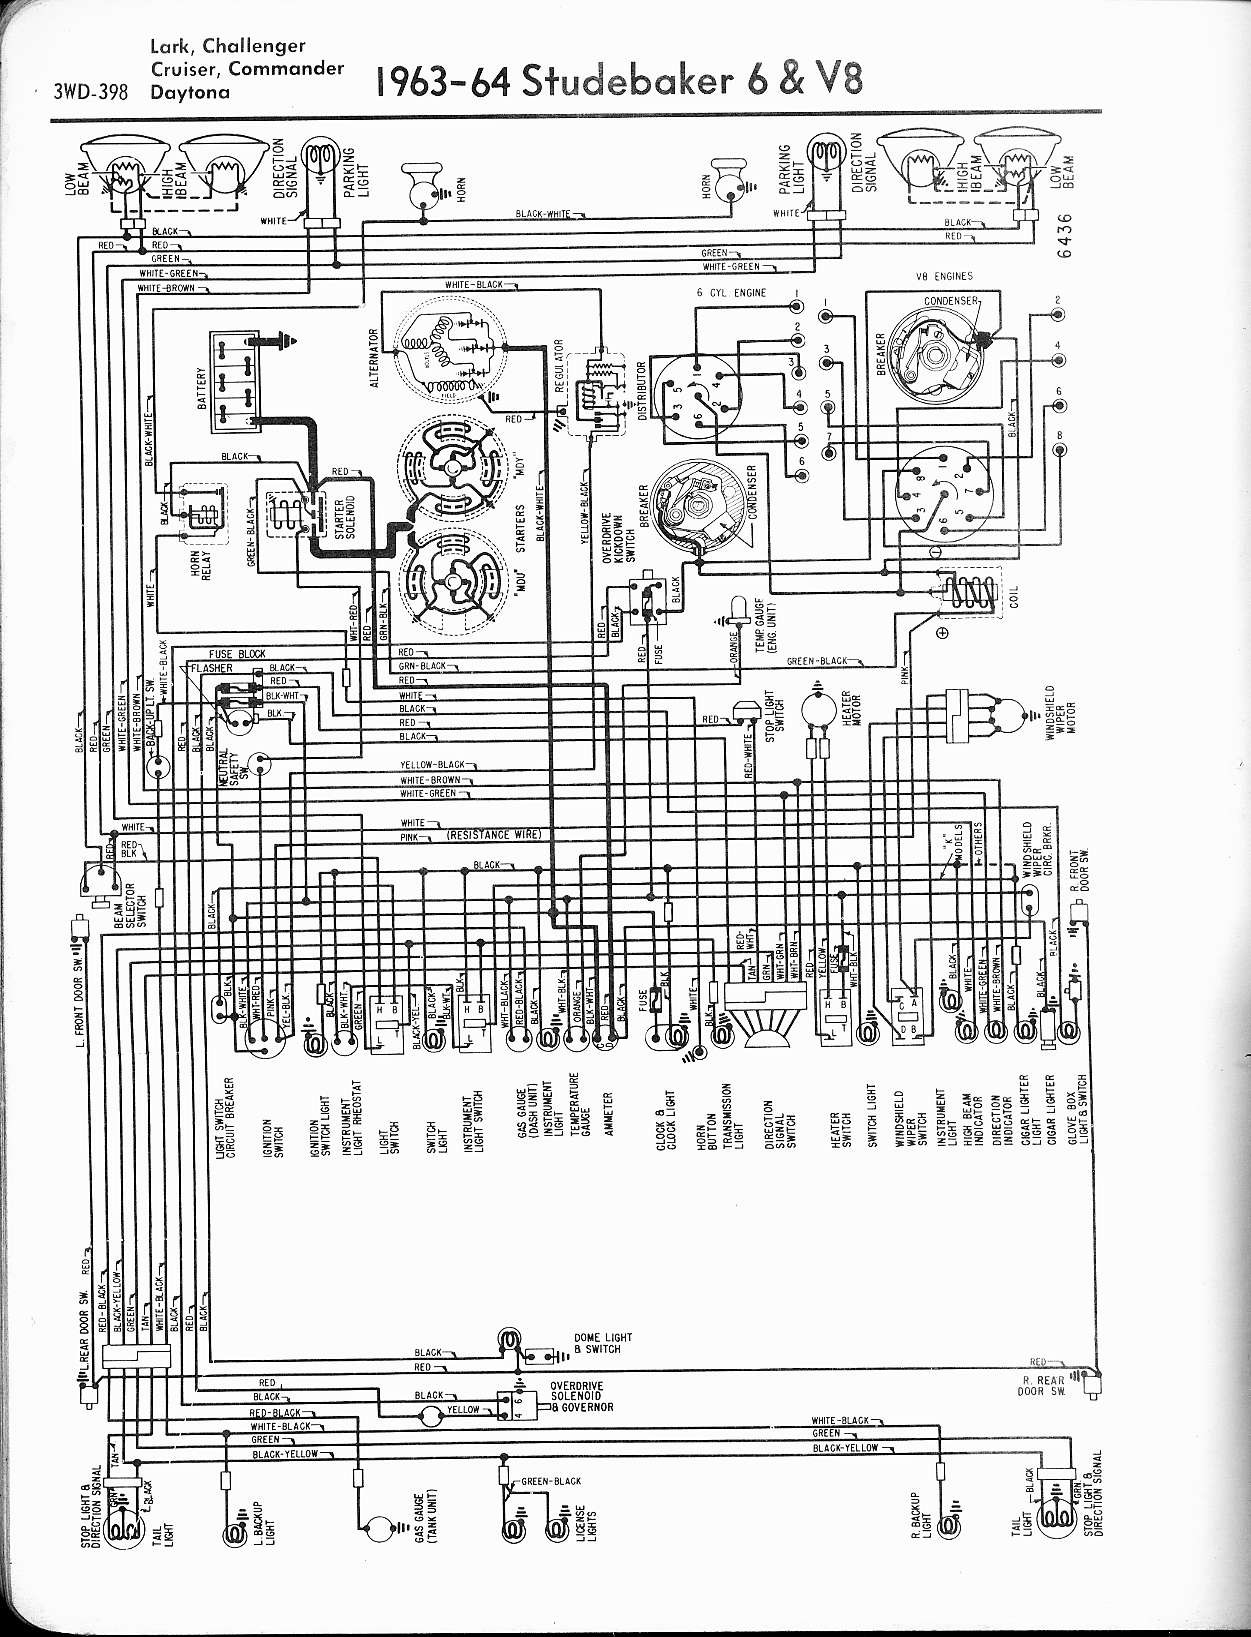 Car Heater Blower Motor Wiring Diagram 1966 Chevy Impala Electrical No High Speed And Wipers Of